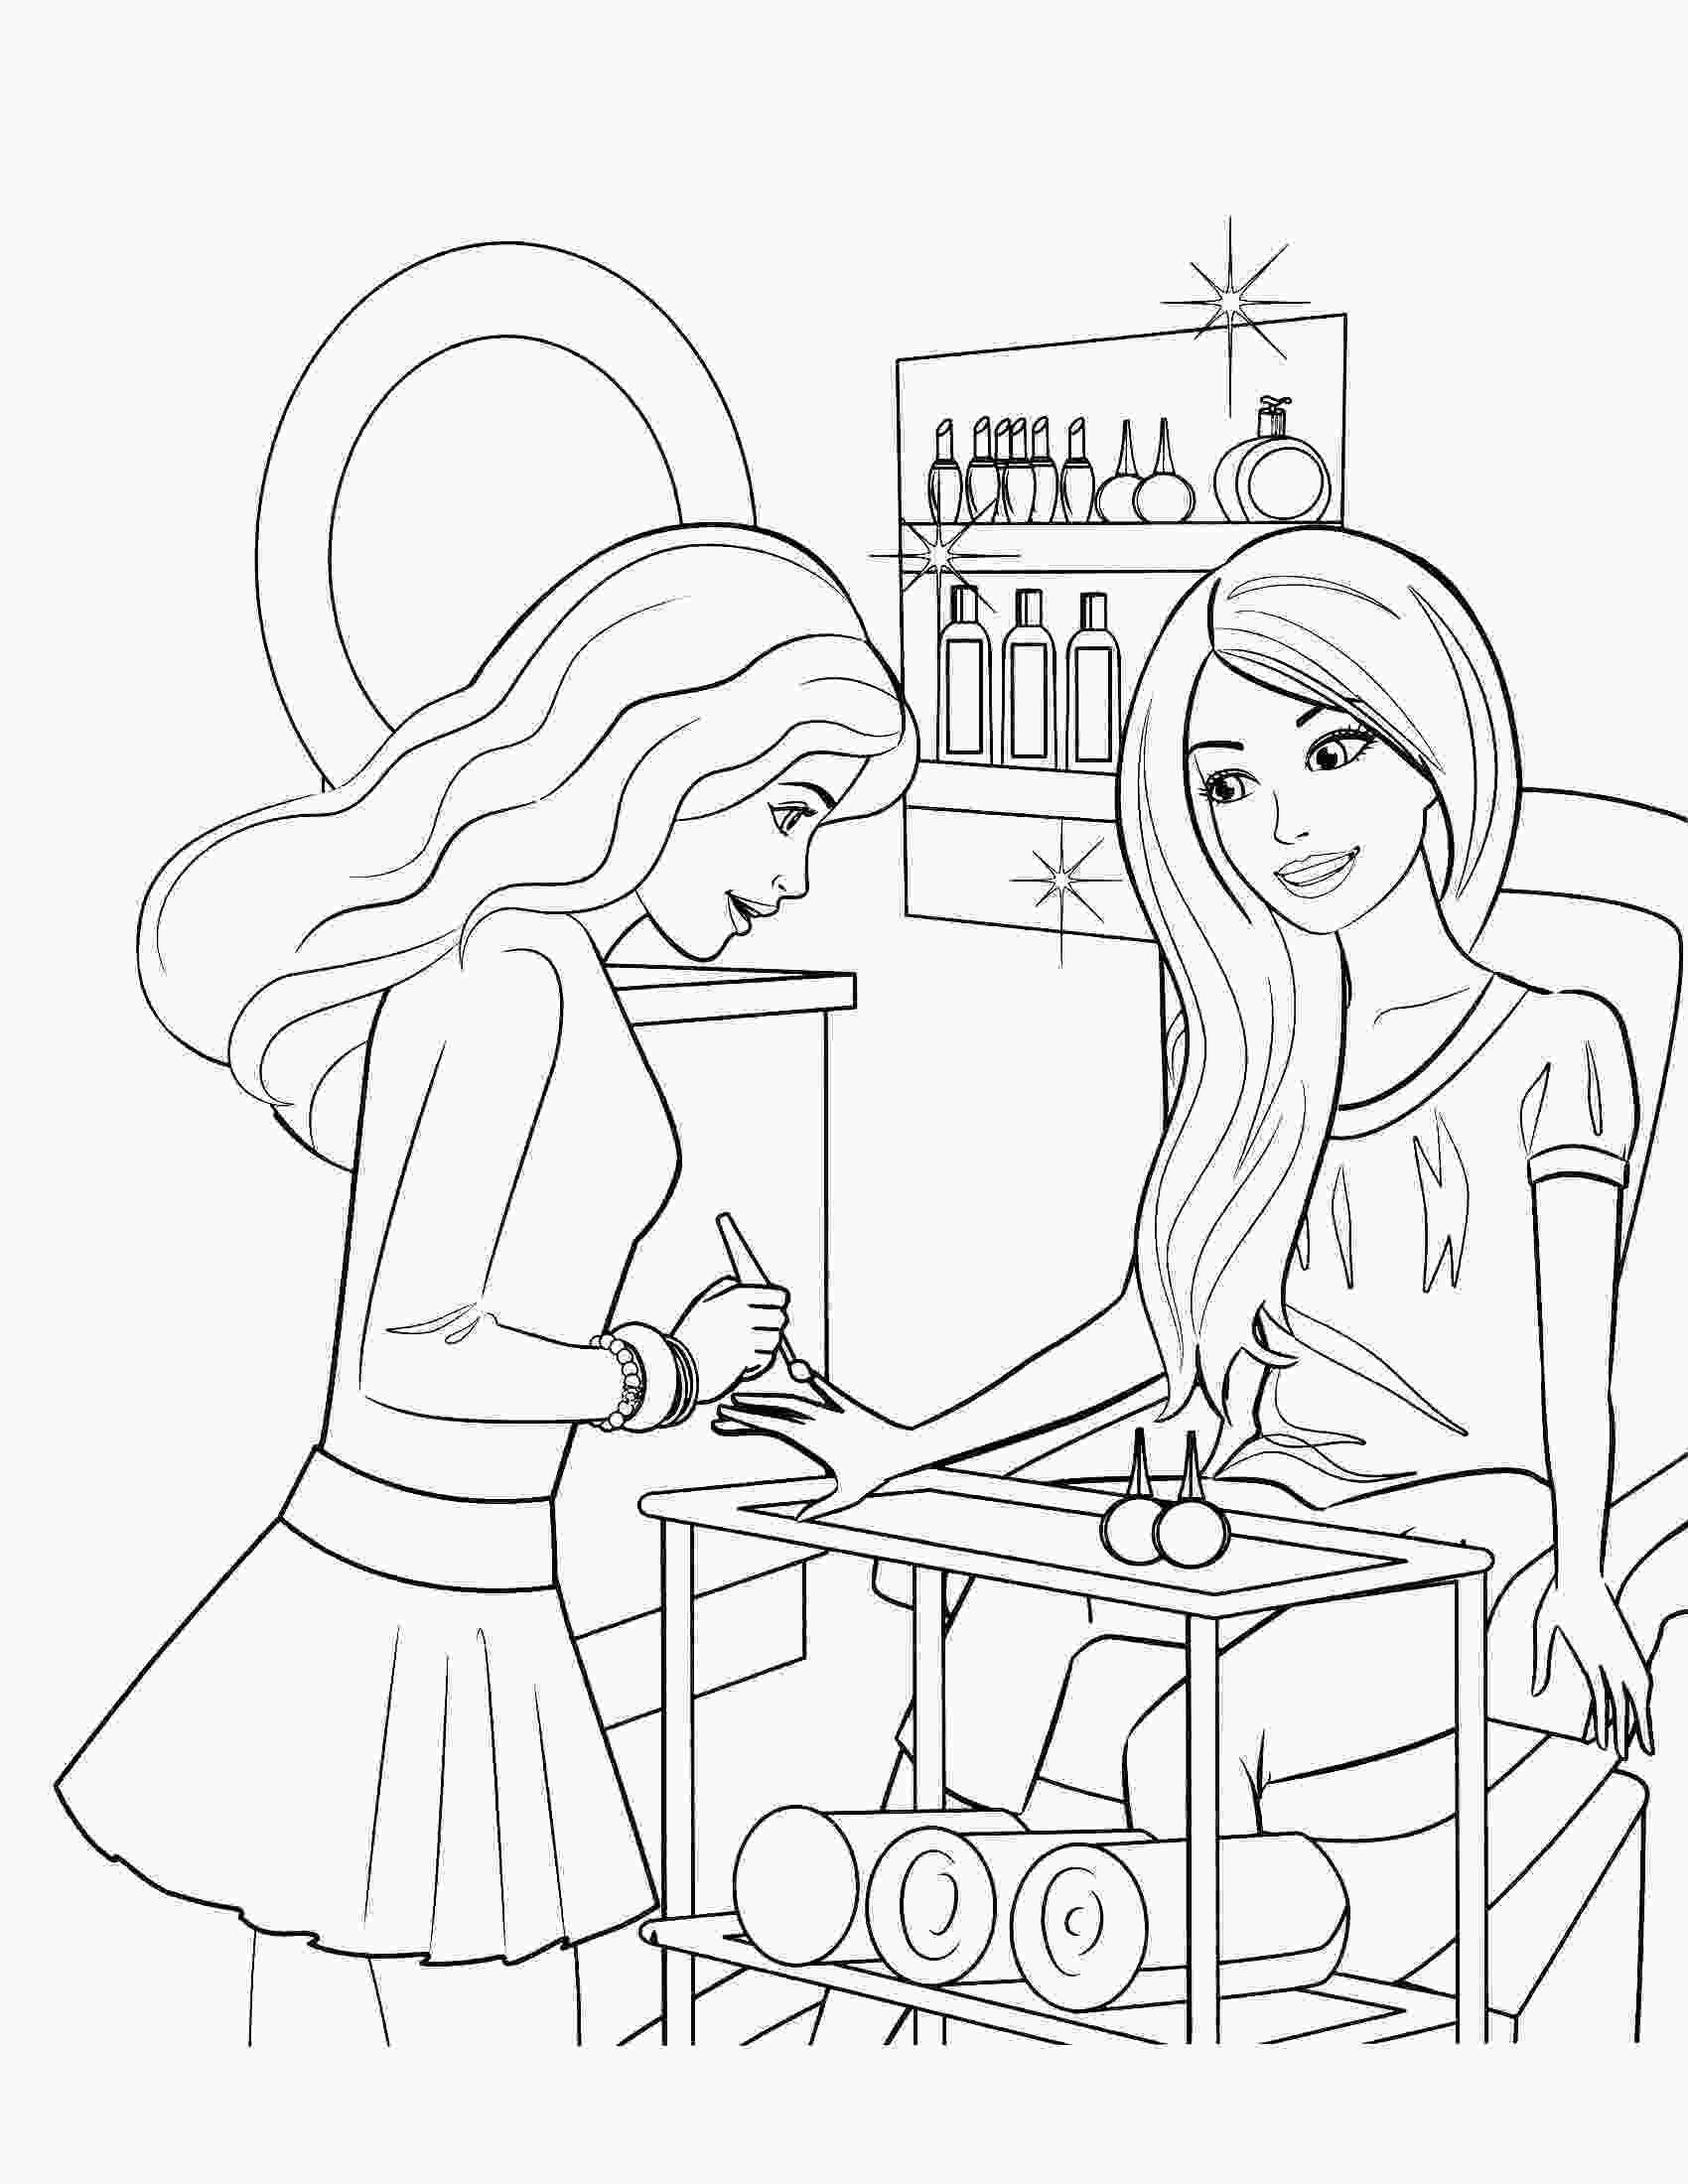 barbie drawings to color free printable barbie coloring ...